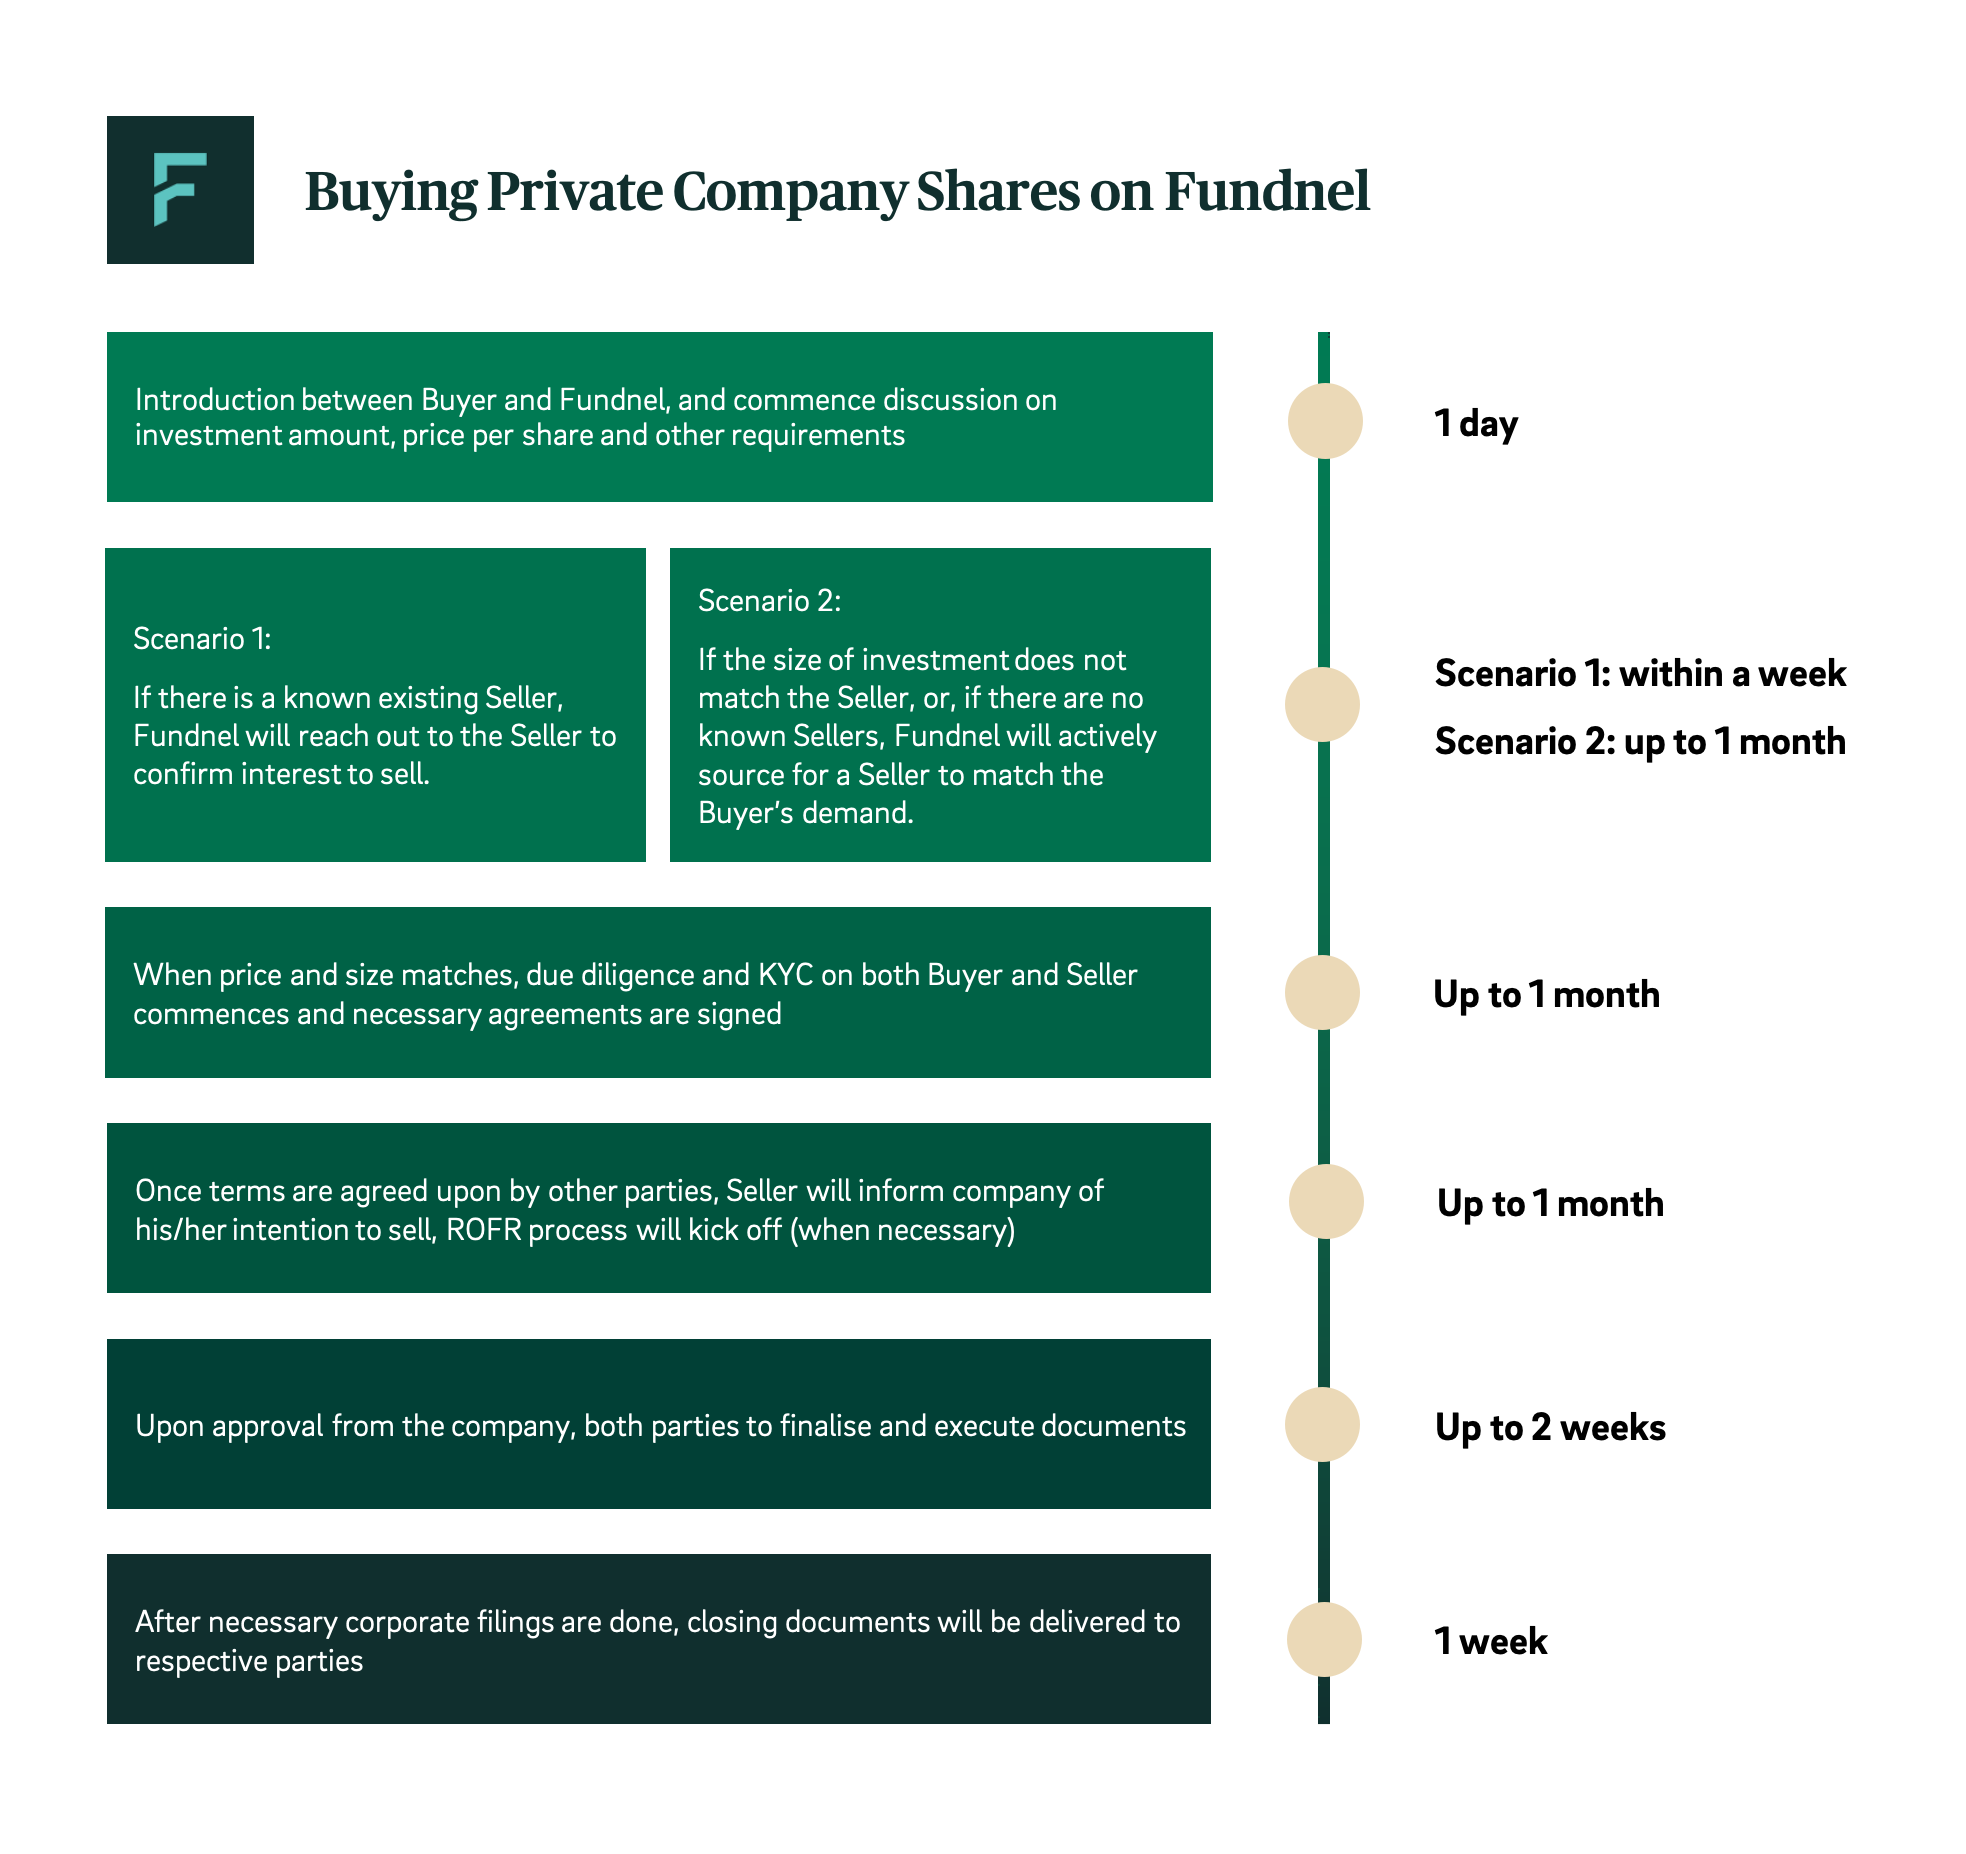 Buying private company shares on Fundnel